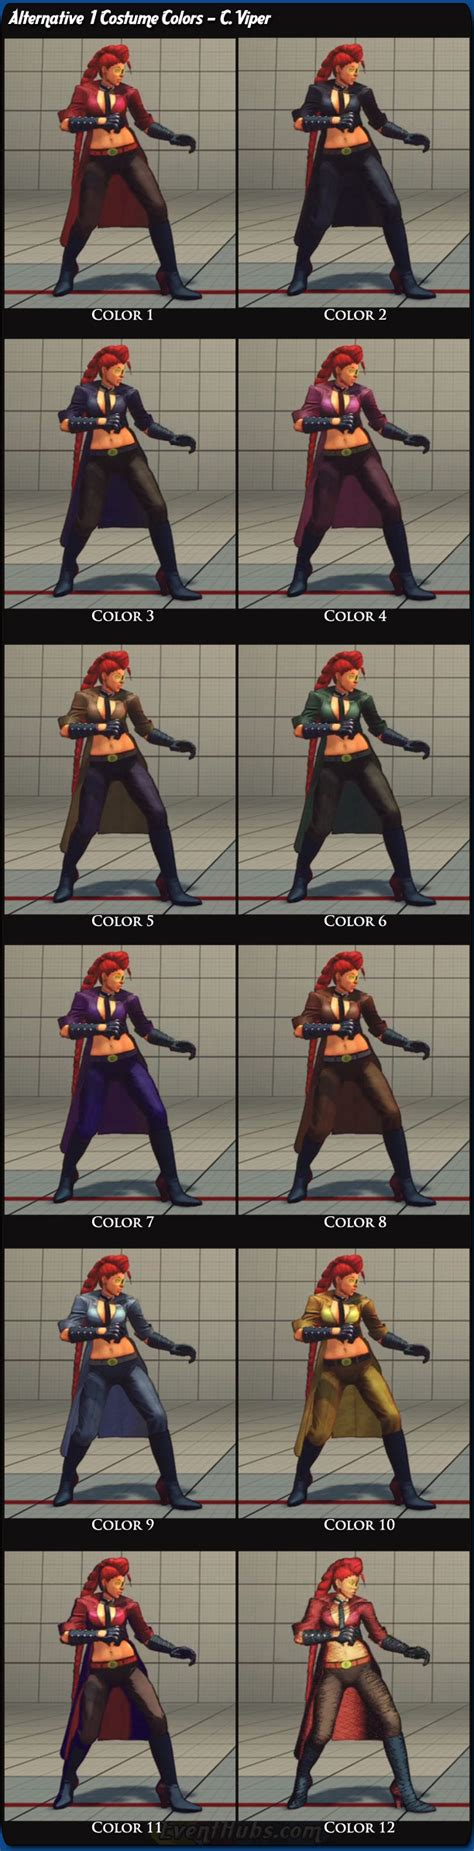 gief s a guide to fighter v third edition books costume and alternative colors for c viper in